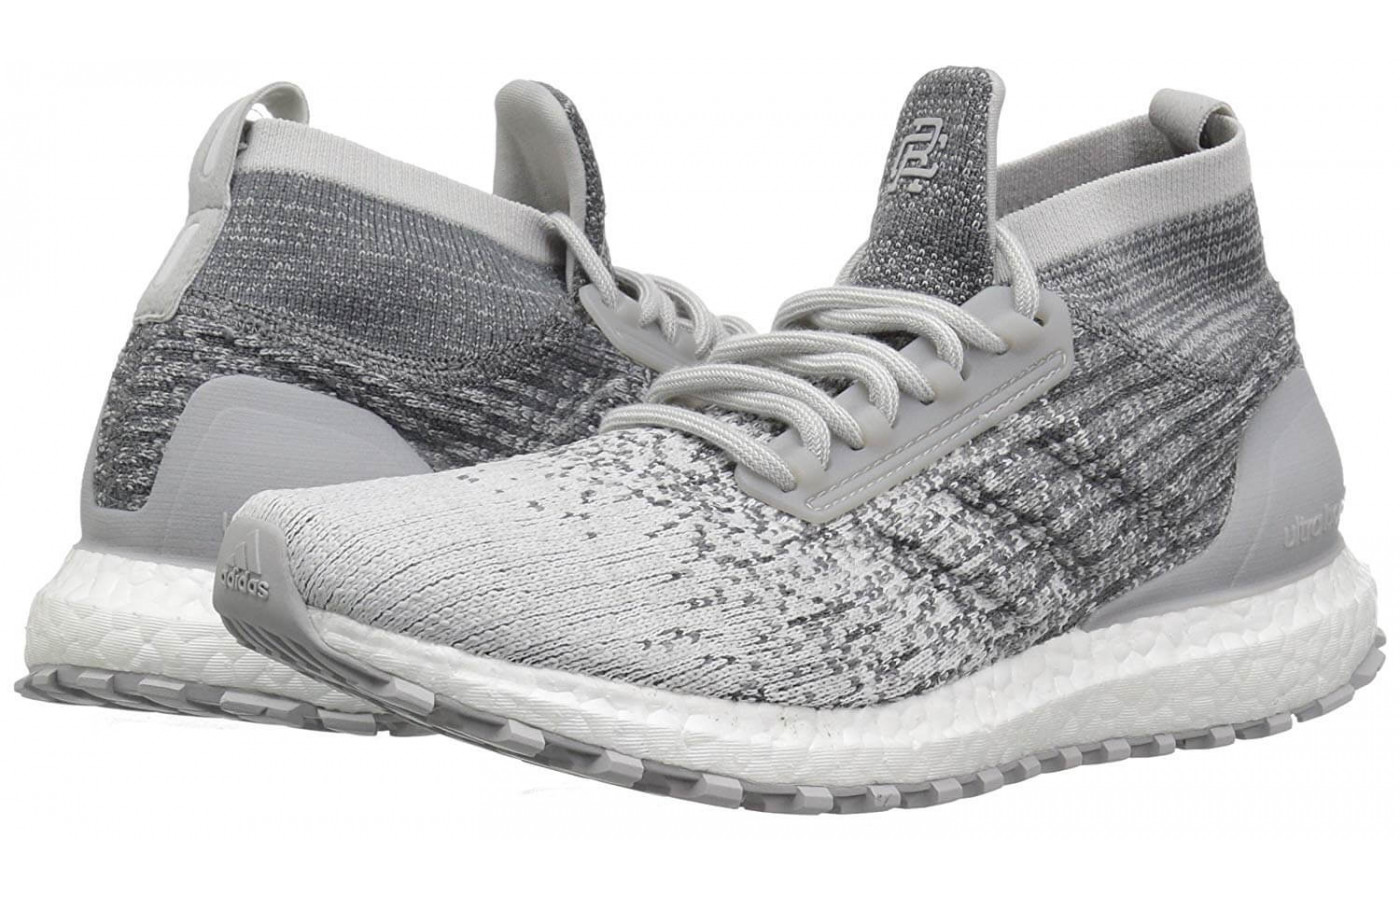 8bad1b317 ... The Adidas X Reigning Champ Ultraboost are fashionable